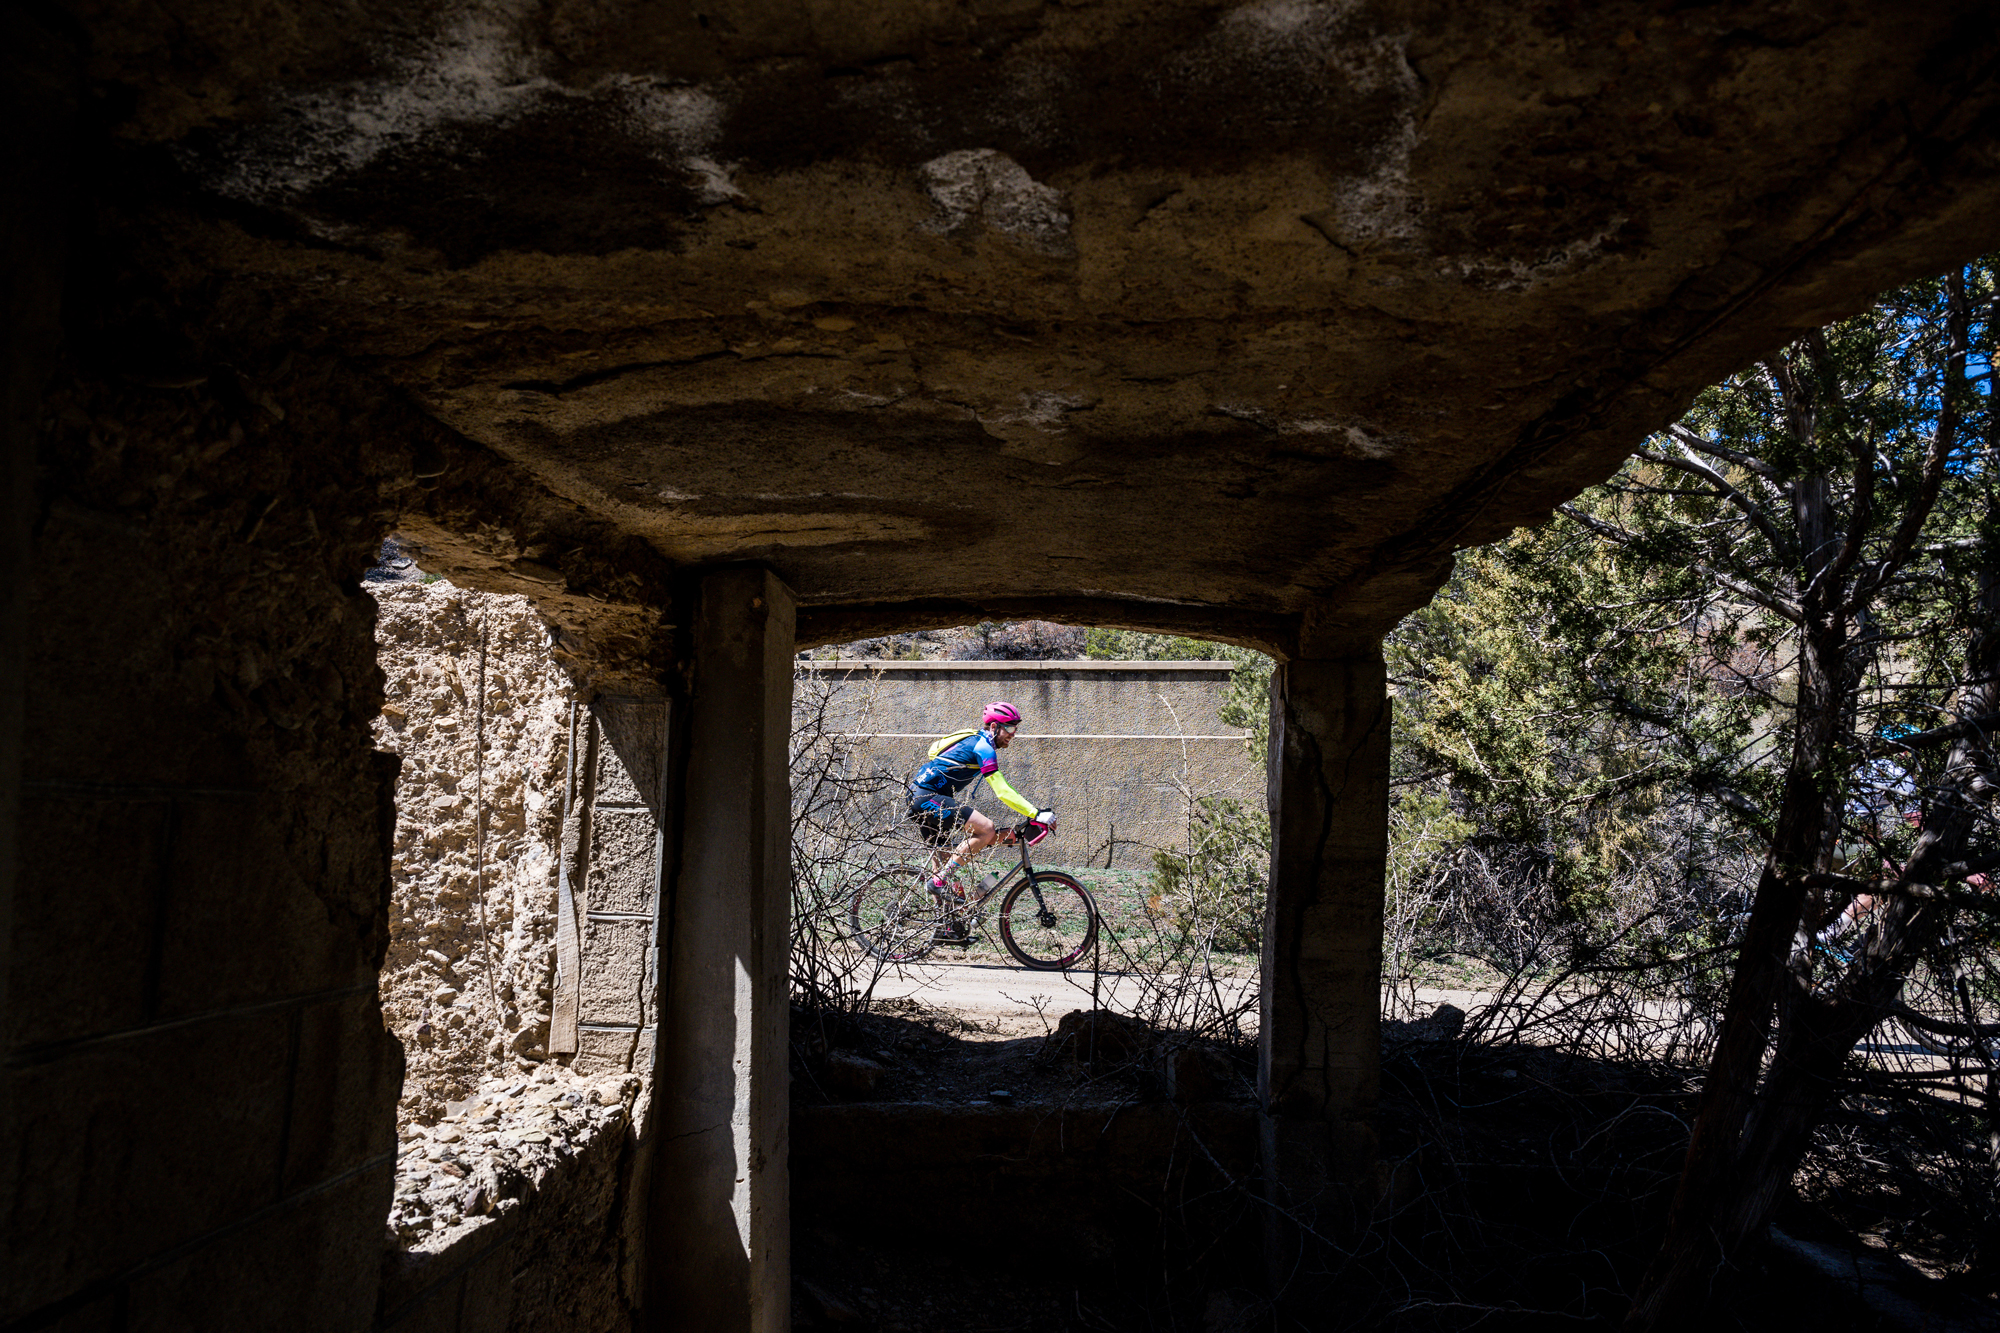 The Rad Gravel Ride through ruins